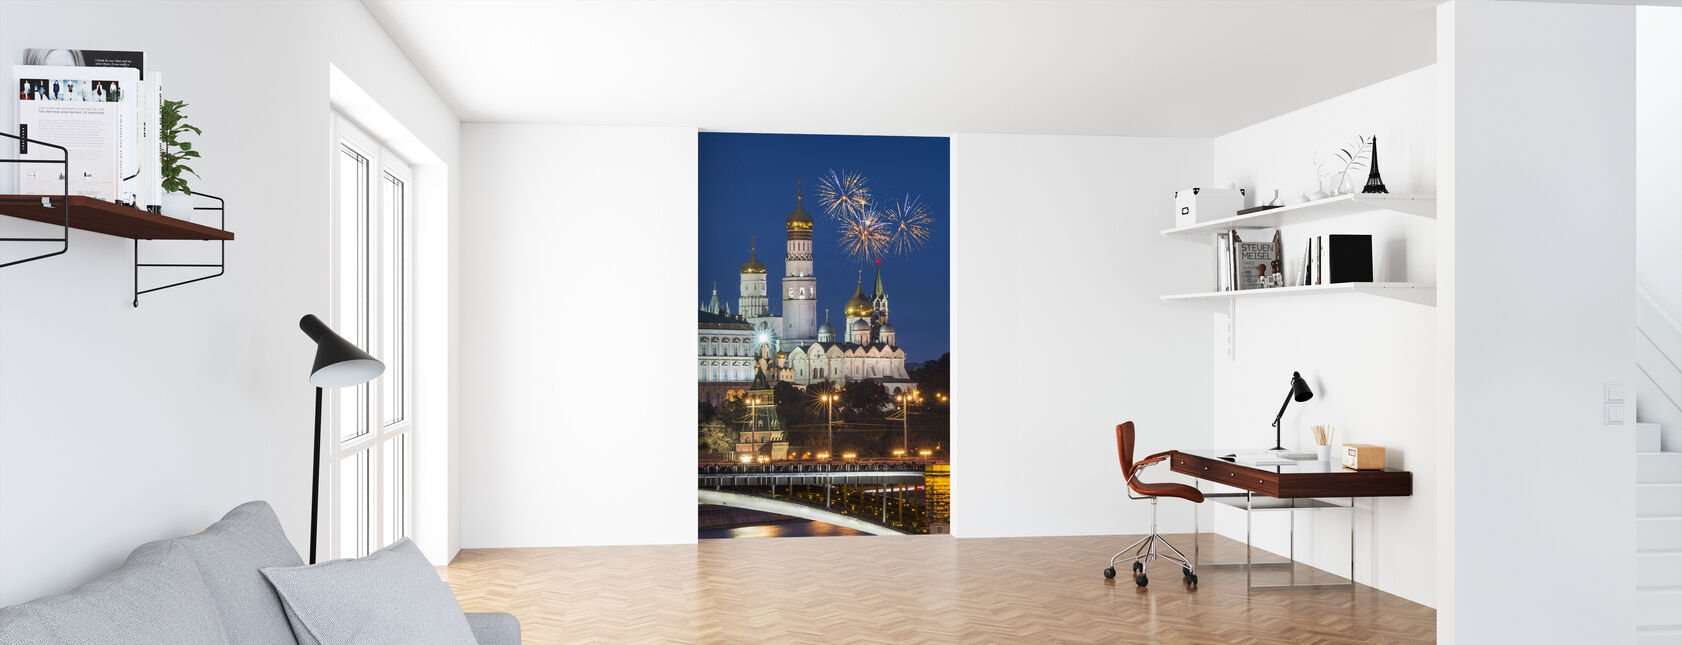 Fireworks over Kremlin - Wallpaper - Office